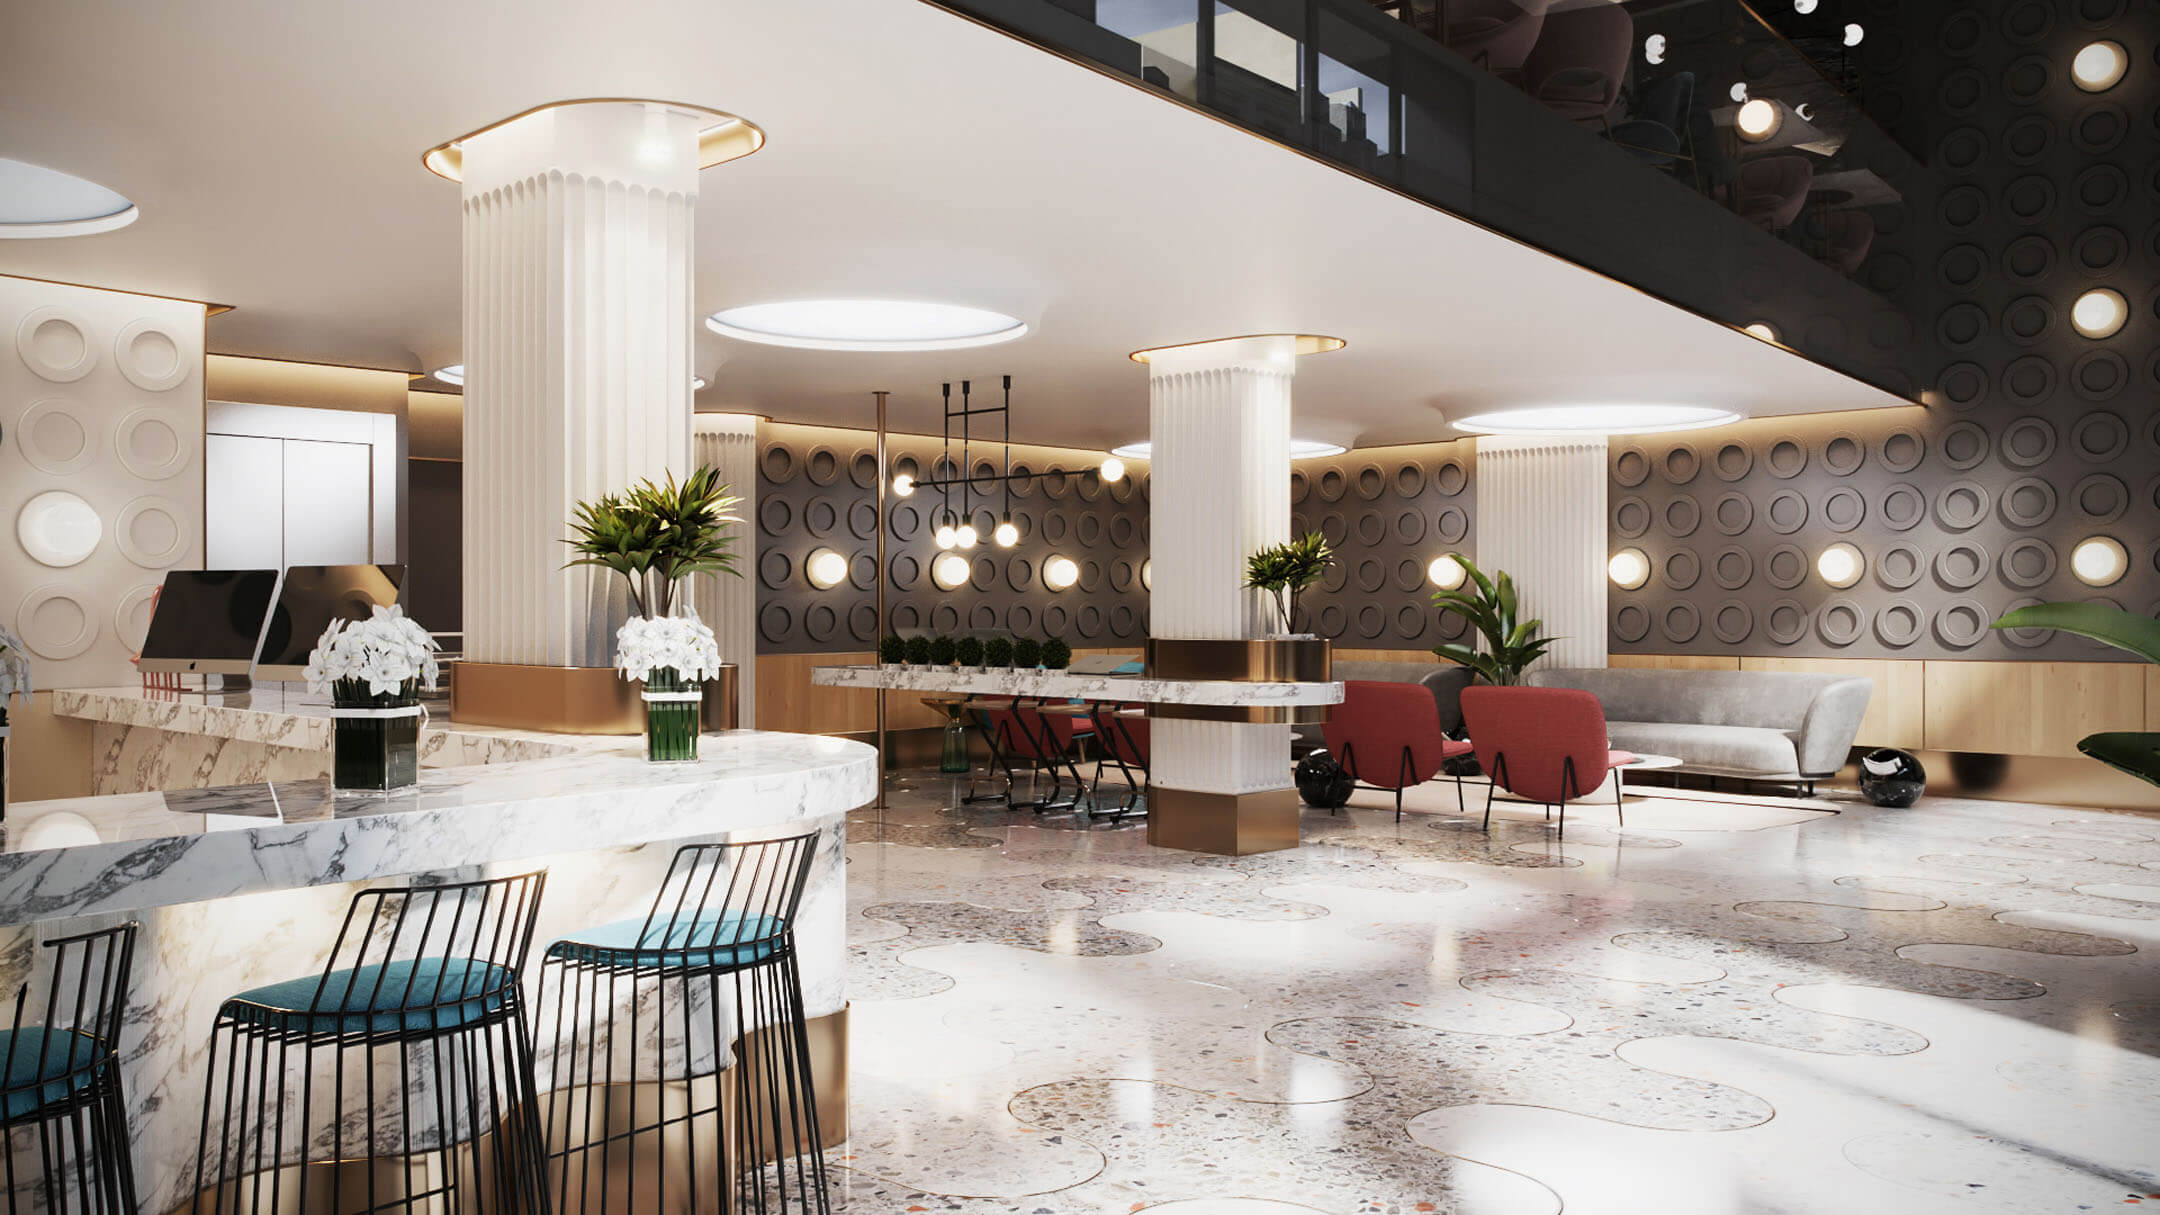 3D Visualization of a Spacious Modern Hotel Lobby